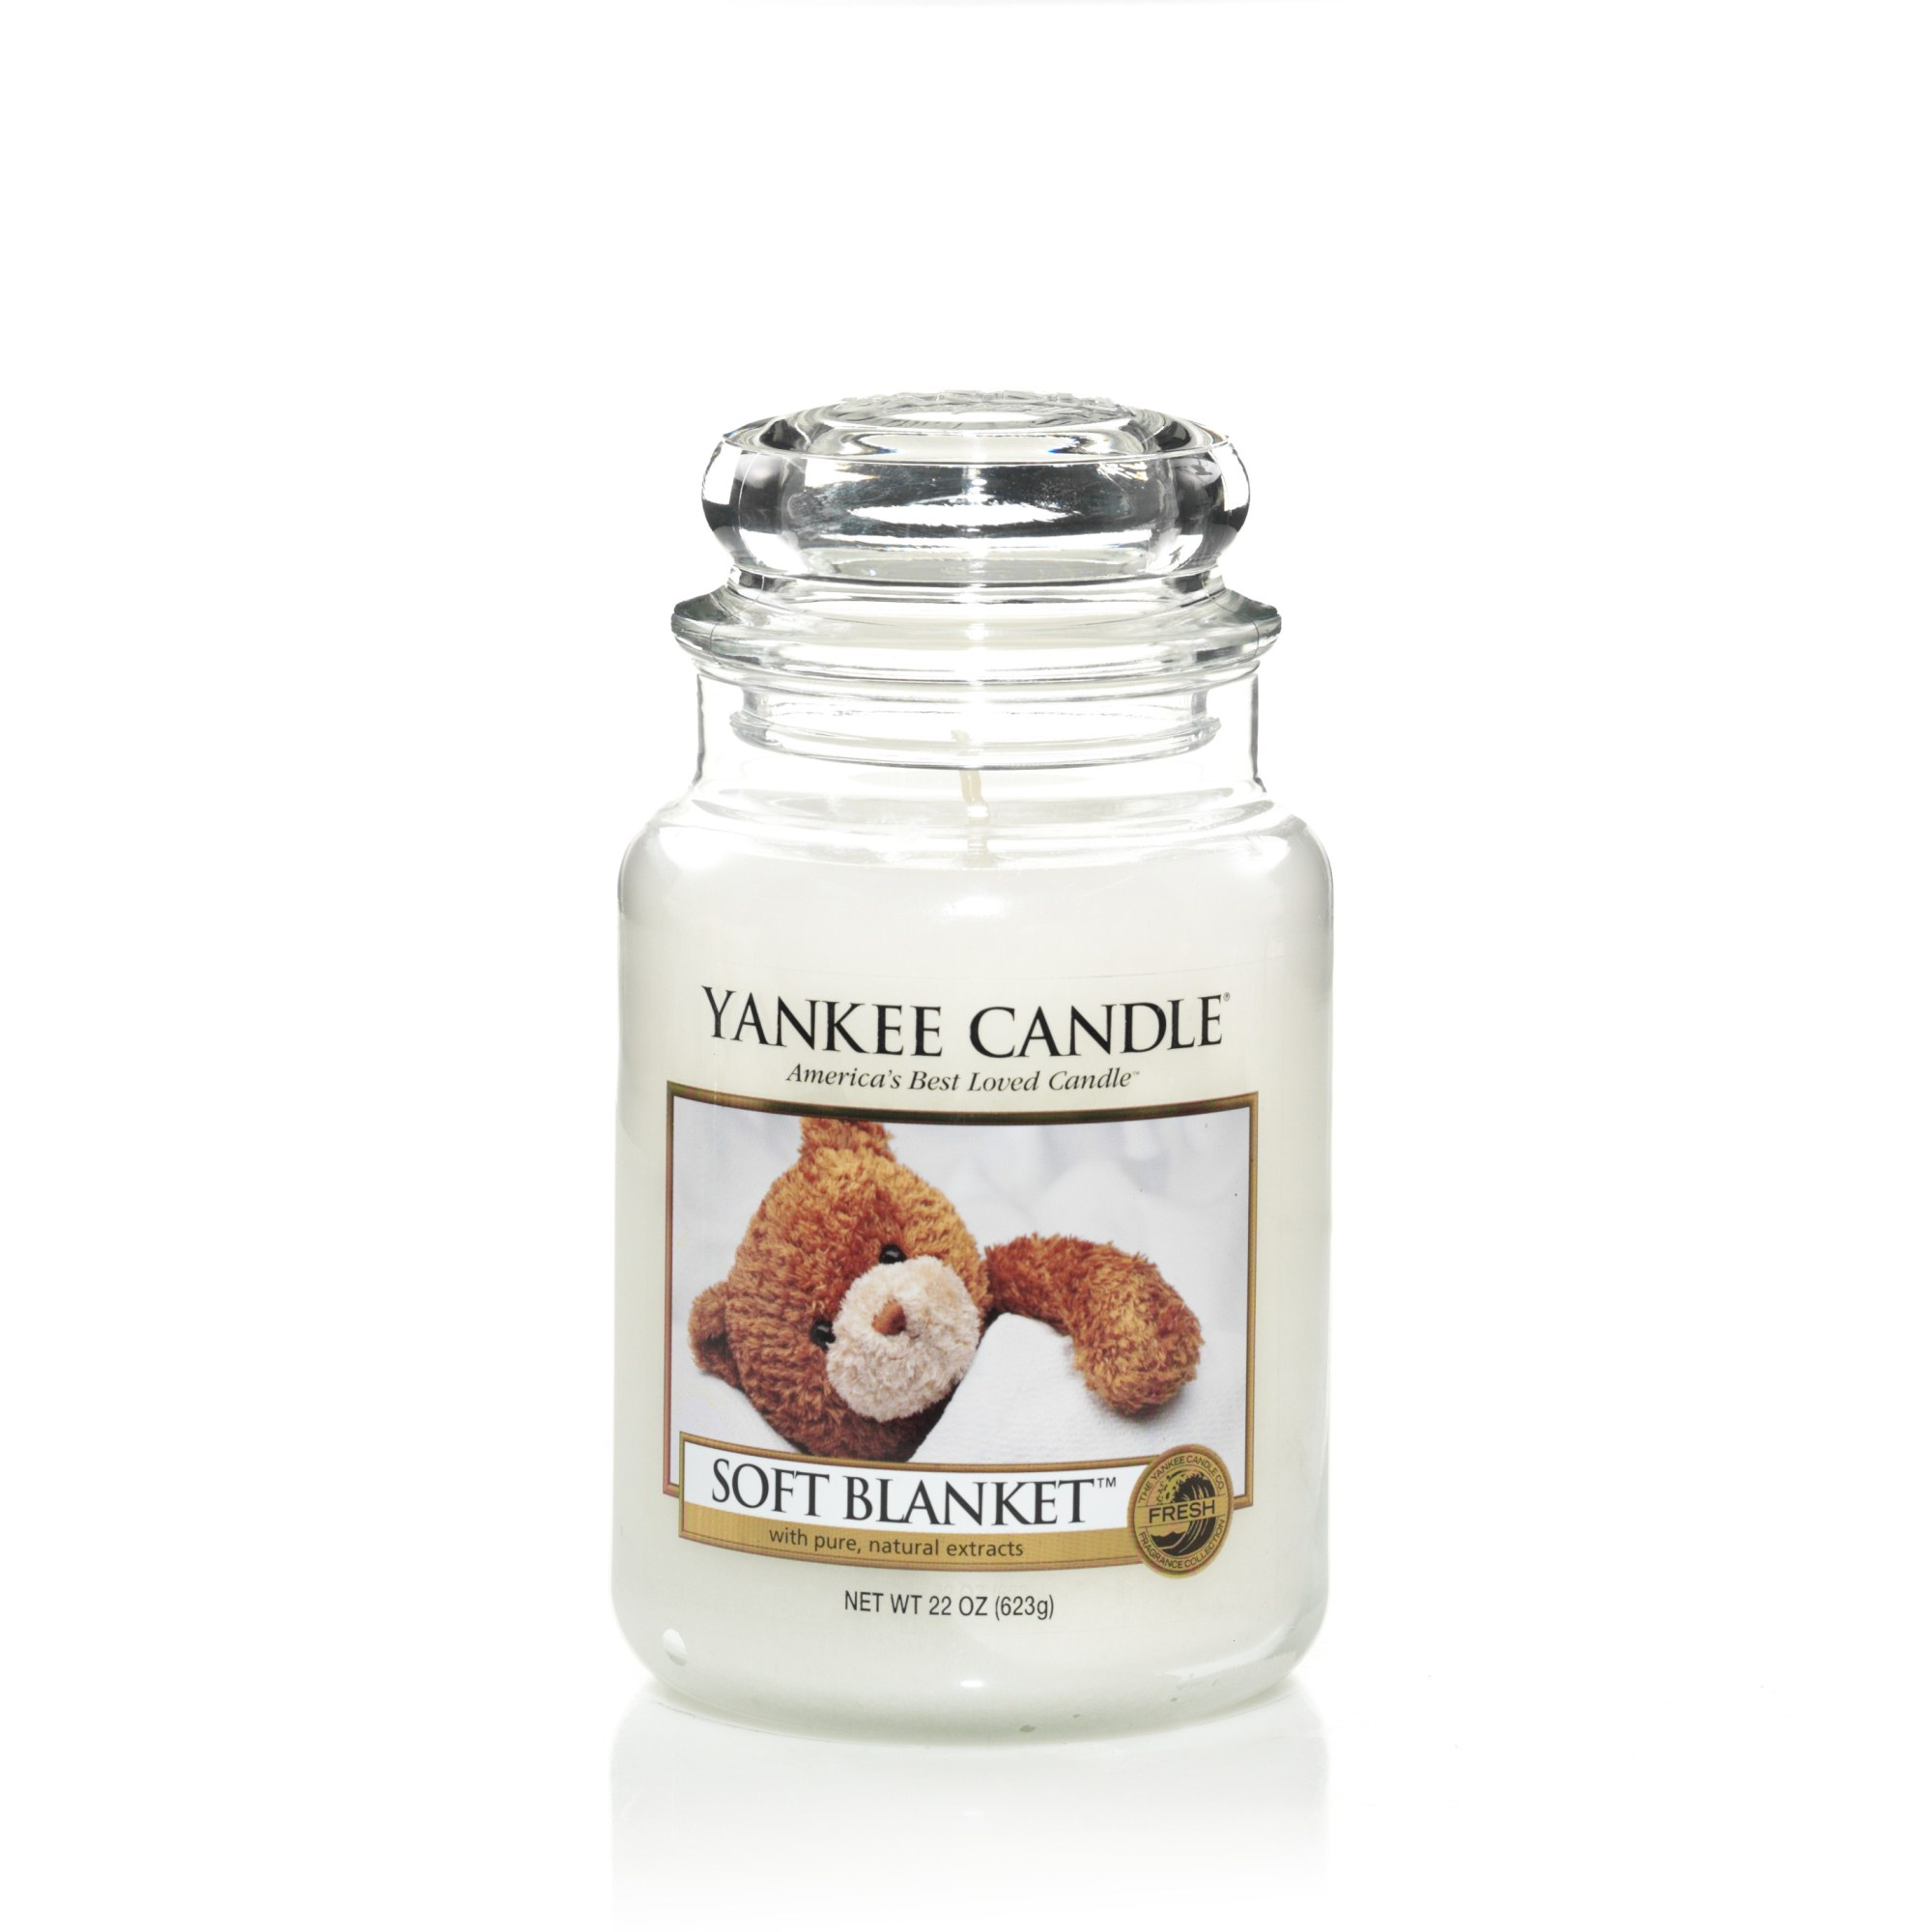 yankee candle gro e kerze soft blanket 623 g duftkerze ebay. Black Bedroom Furniture Sets. Home Design Ideas